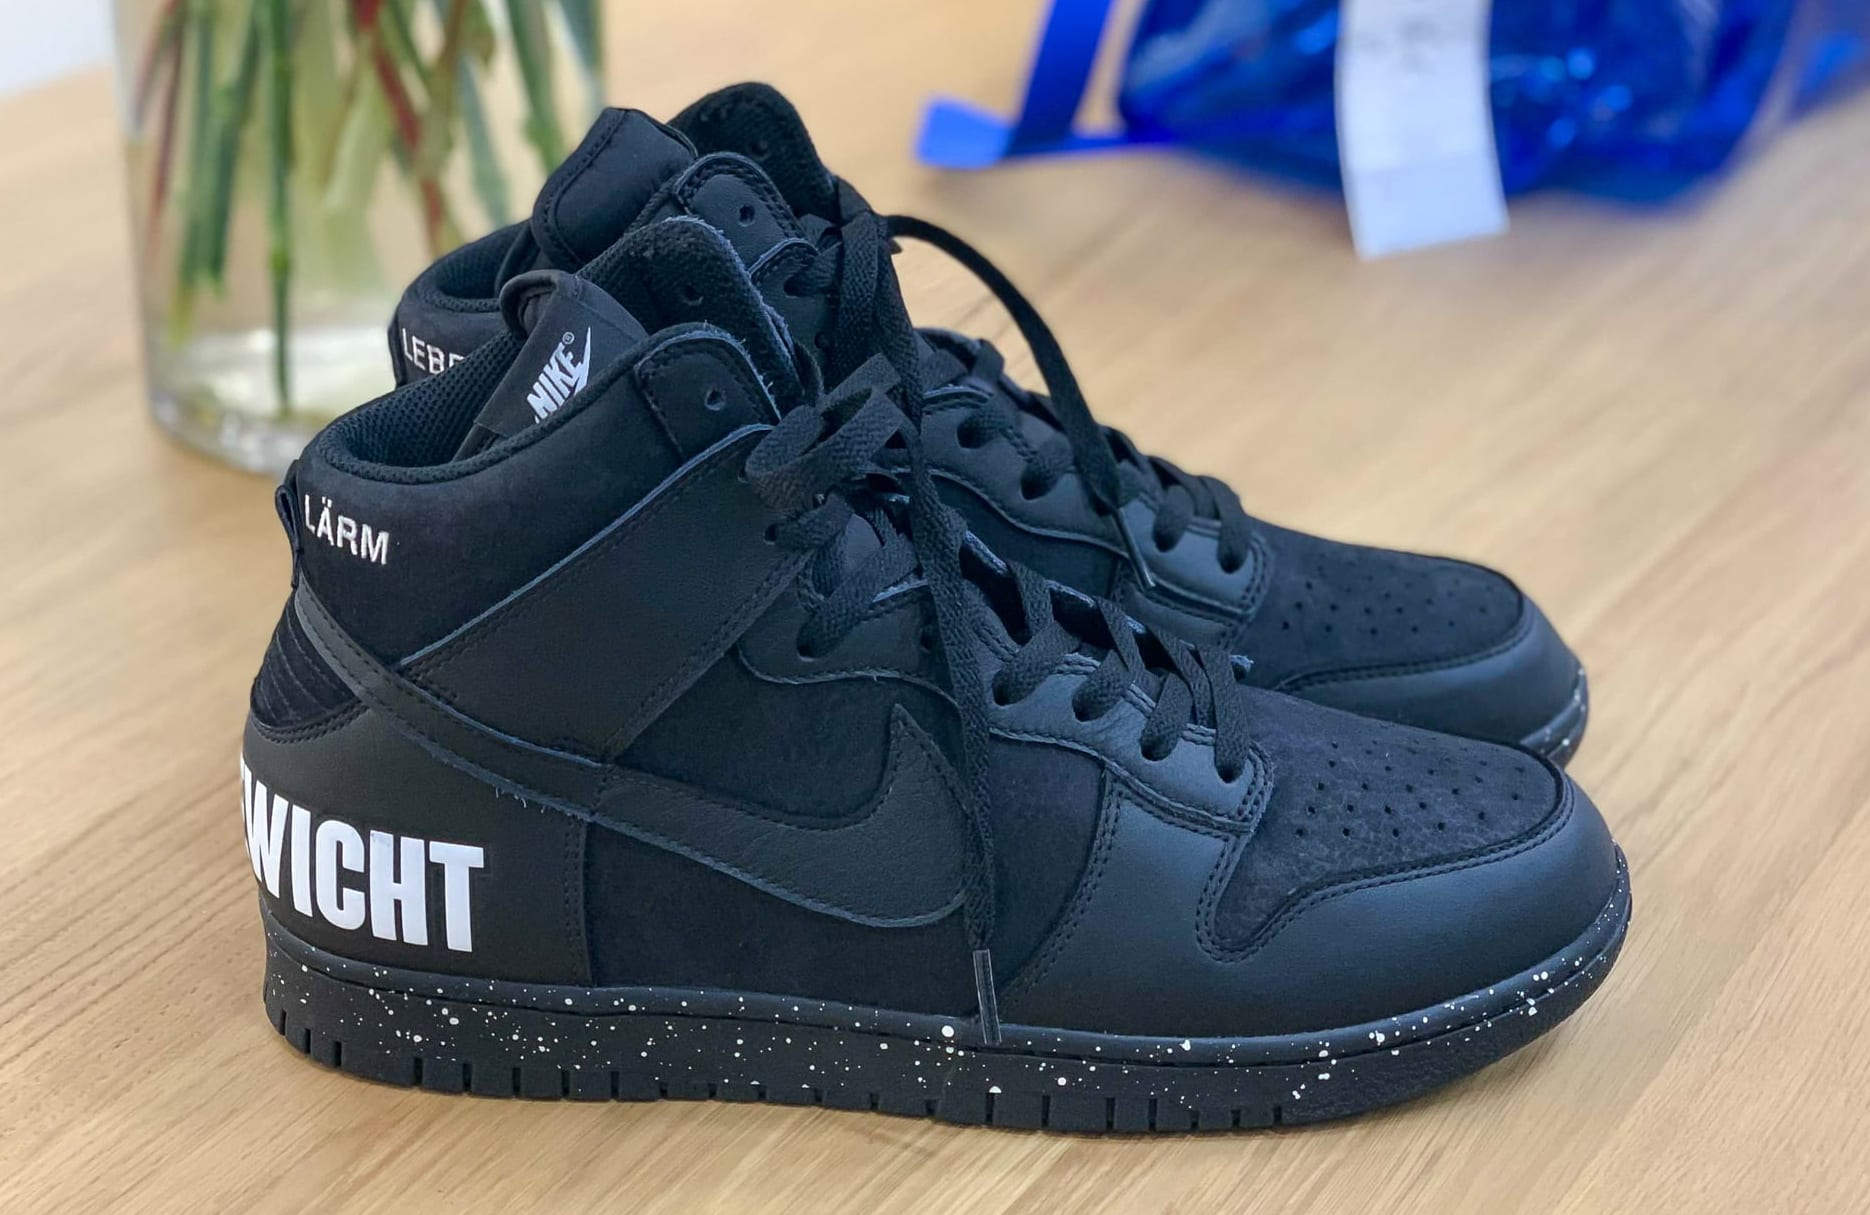 Undercover x Nike Dunk High Black Fall/Winter 2021-22